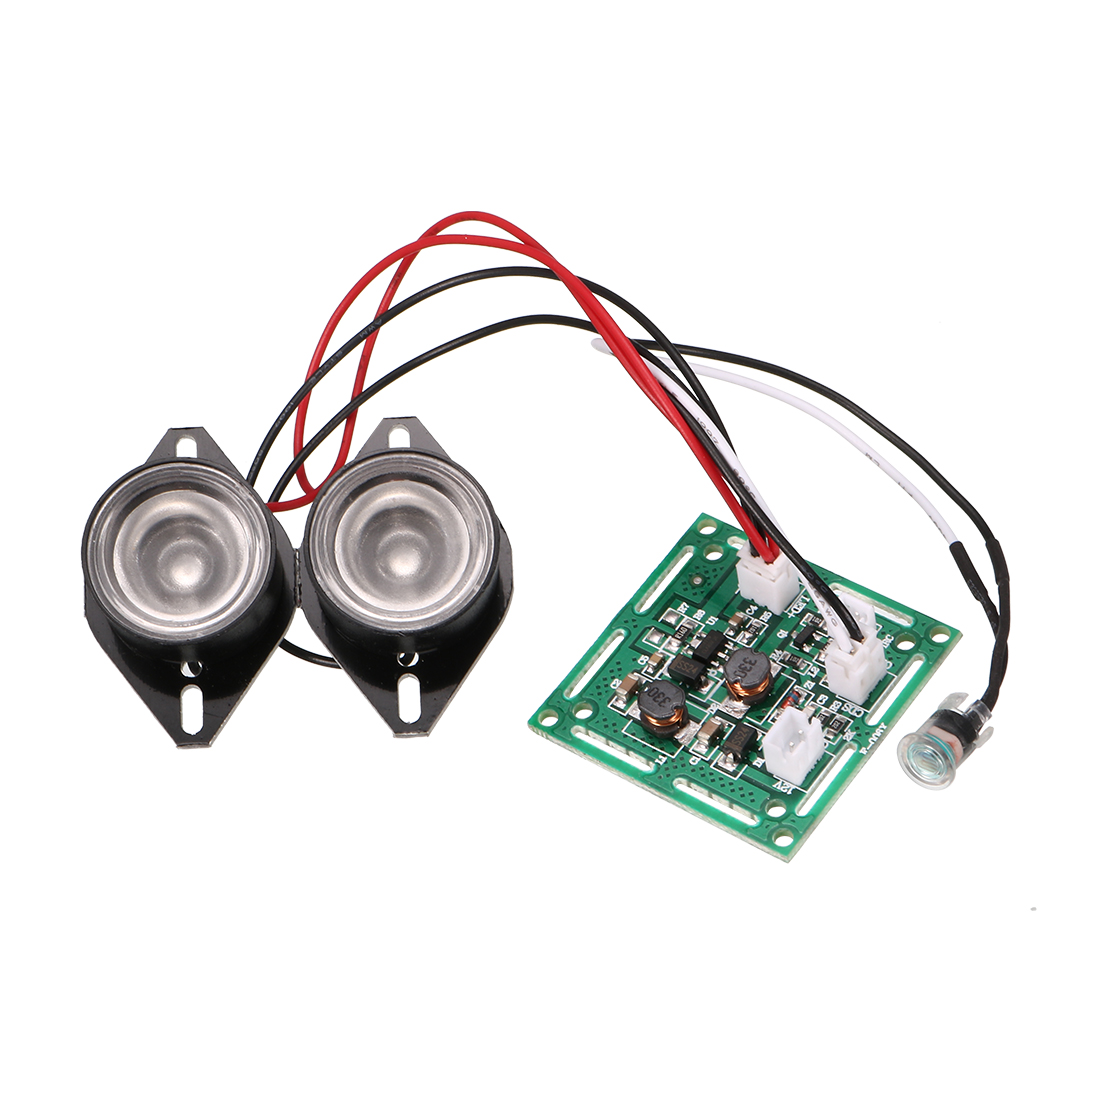 2 High Power 23mm Diameter Infrared IR LED Light Board Module For CCTV Camera